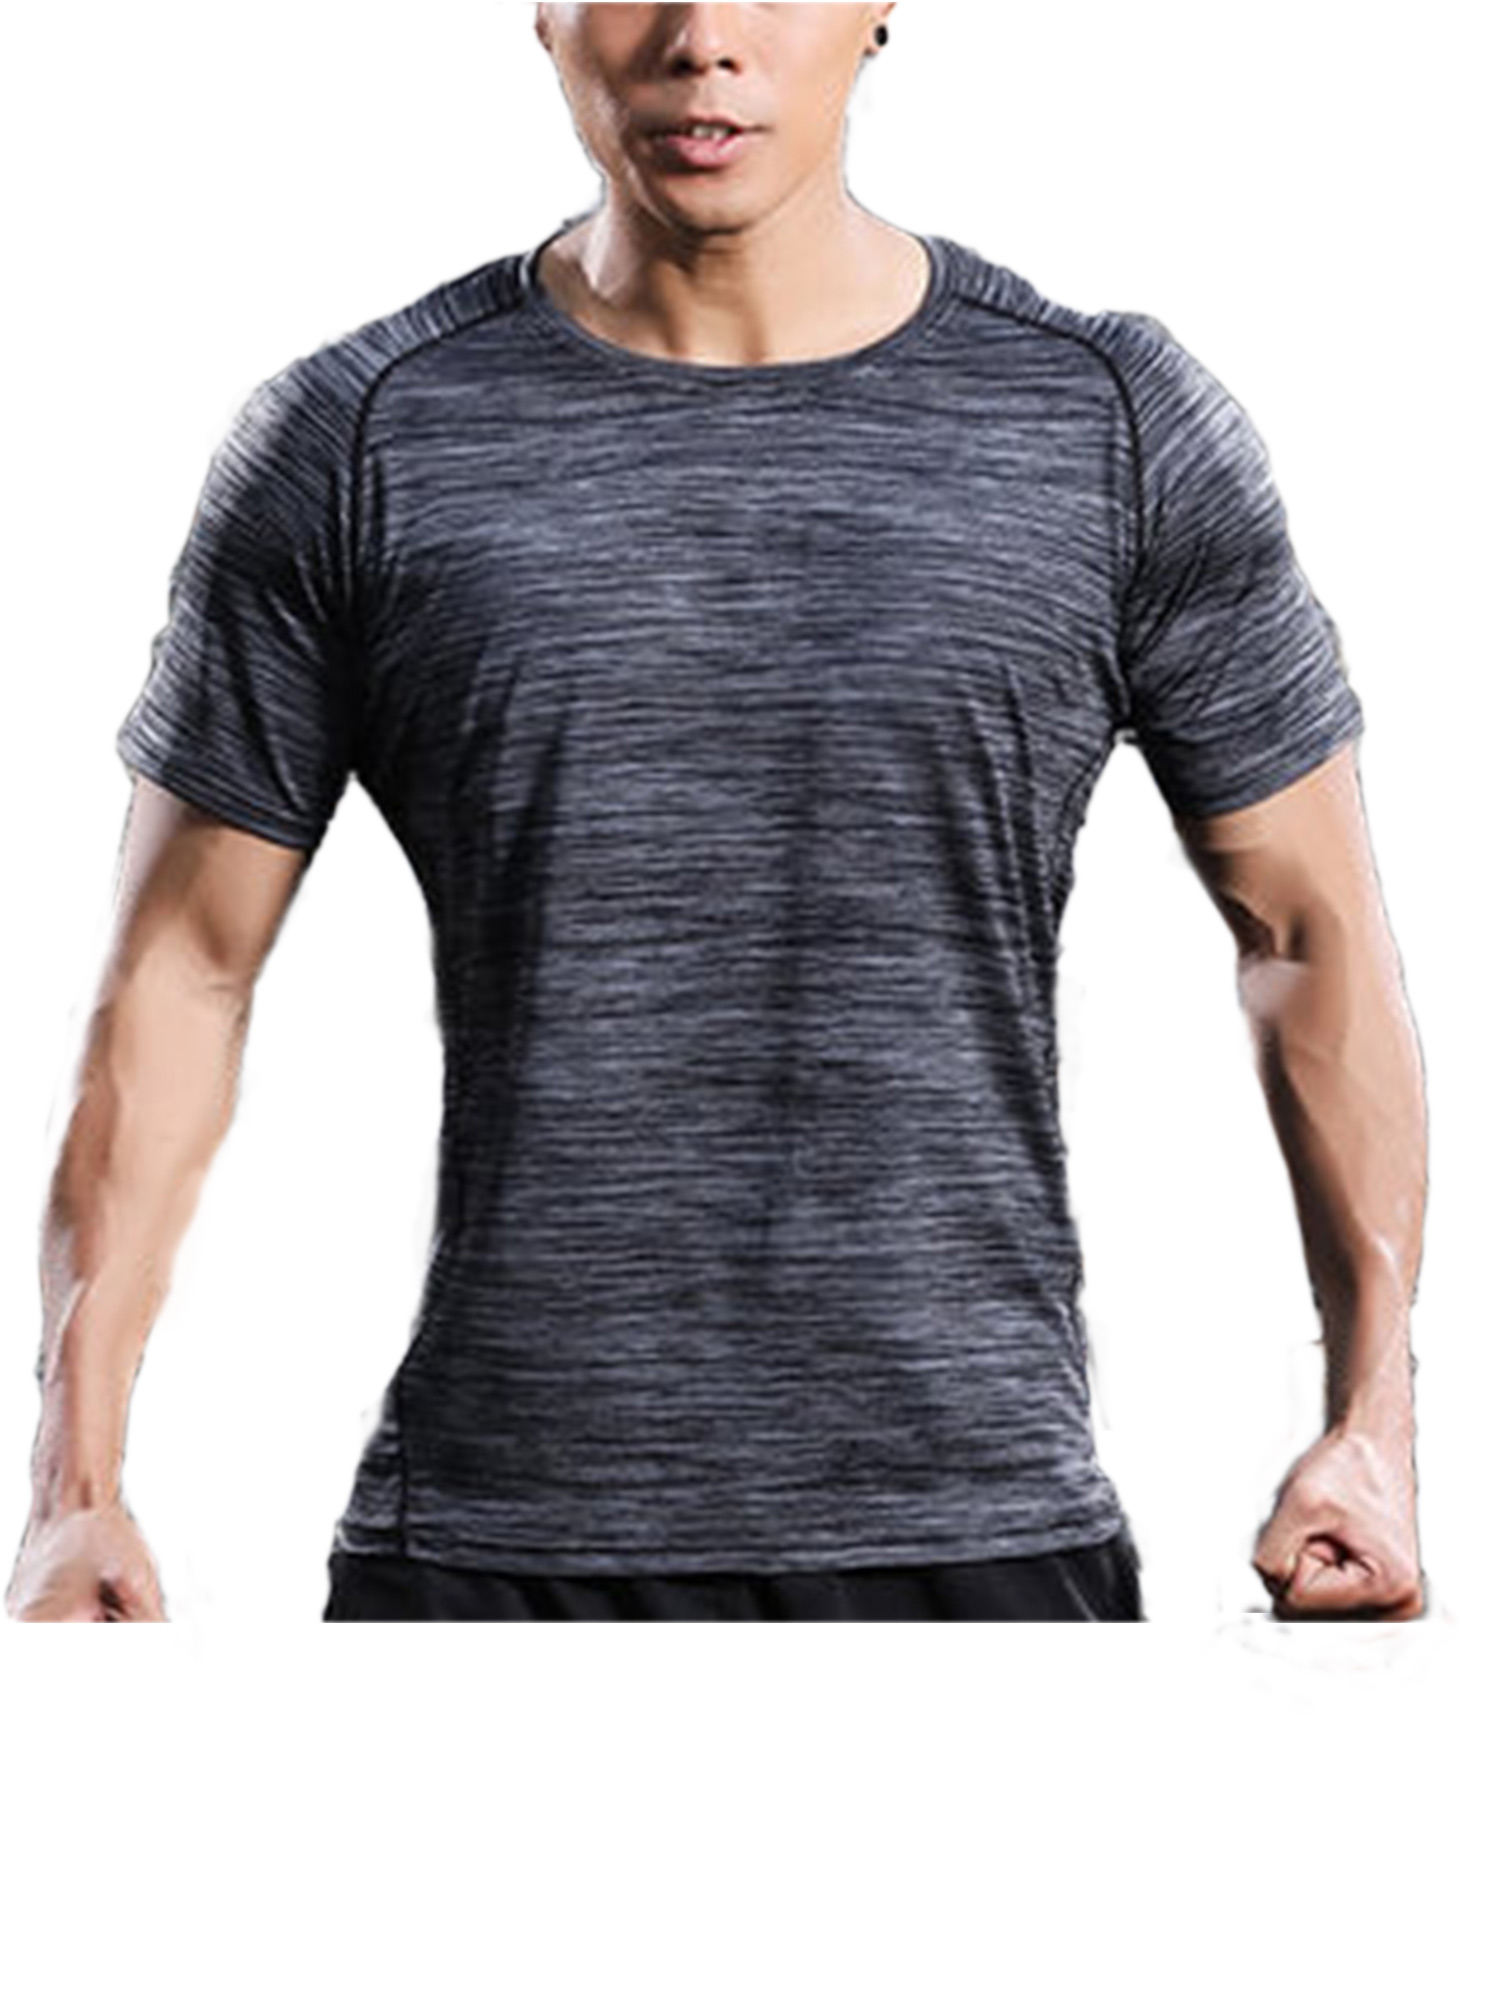 SAYFUT Men s Core Quick Dry Tee Short Sleeve Activewear T-Shirt Comfort  Soft Crew Neck Size M-4XL 7dc98476a0f